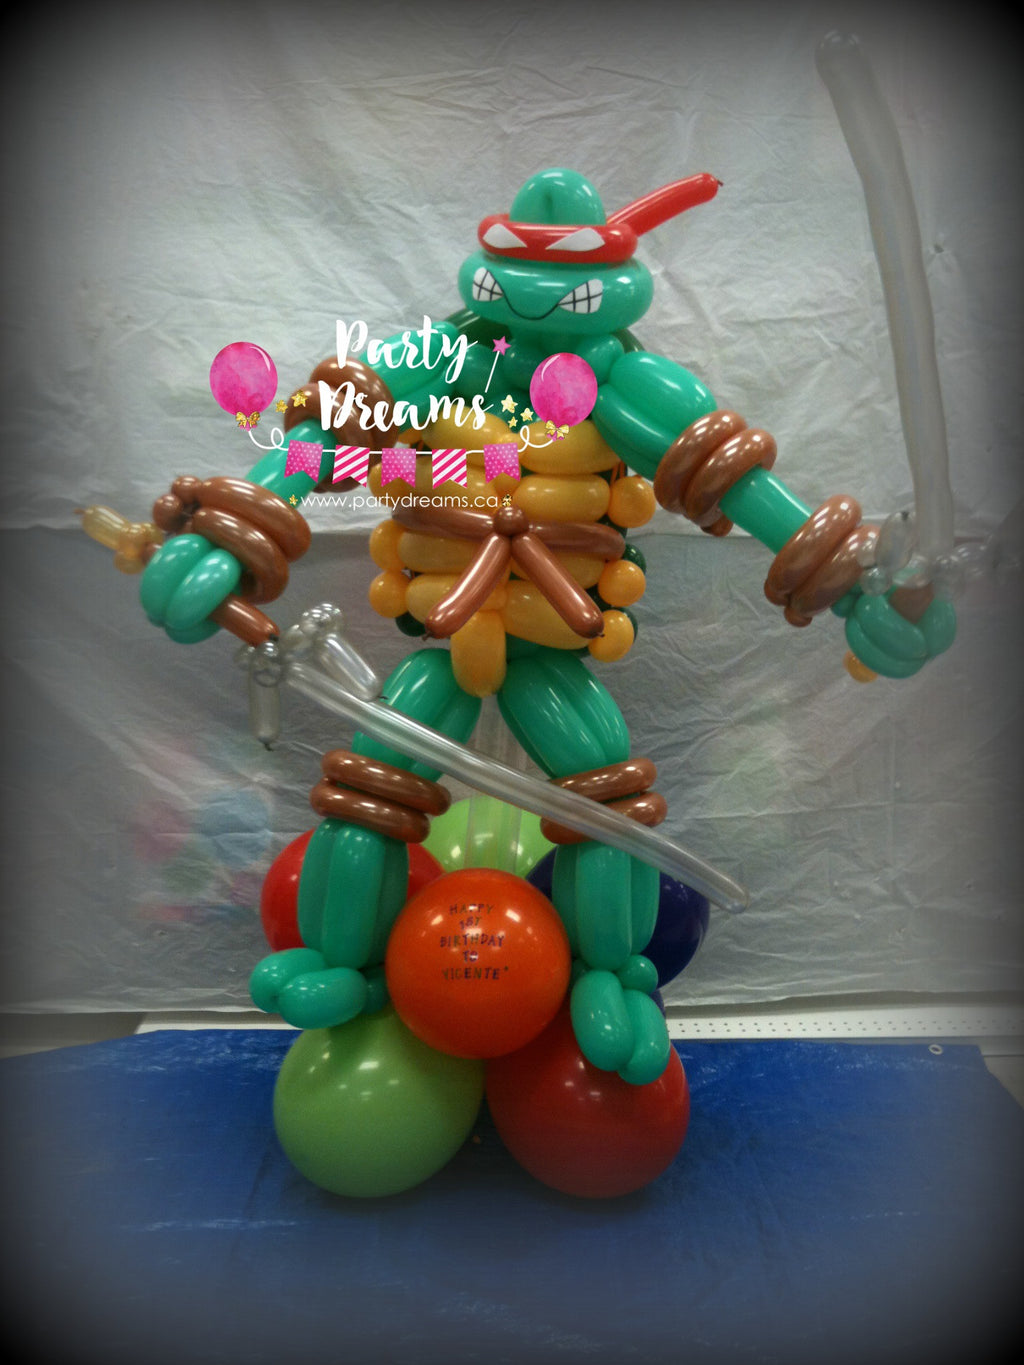 Character Balloon Sculpture (Large) #SB162805